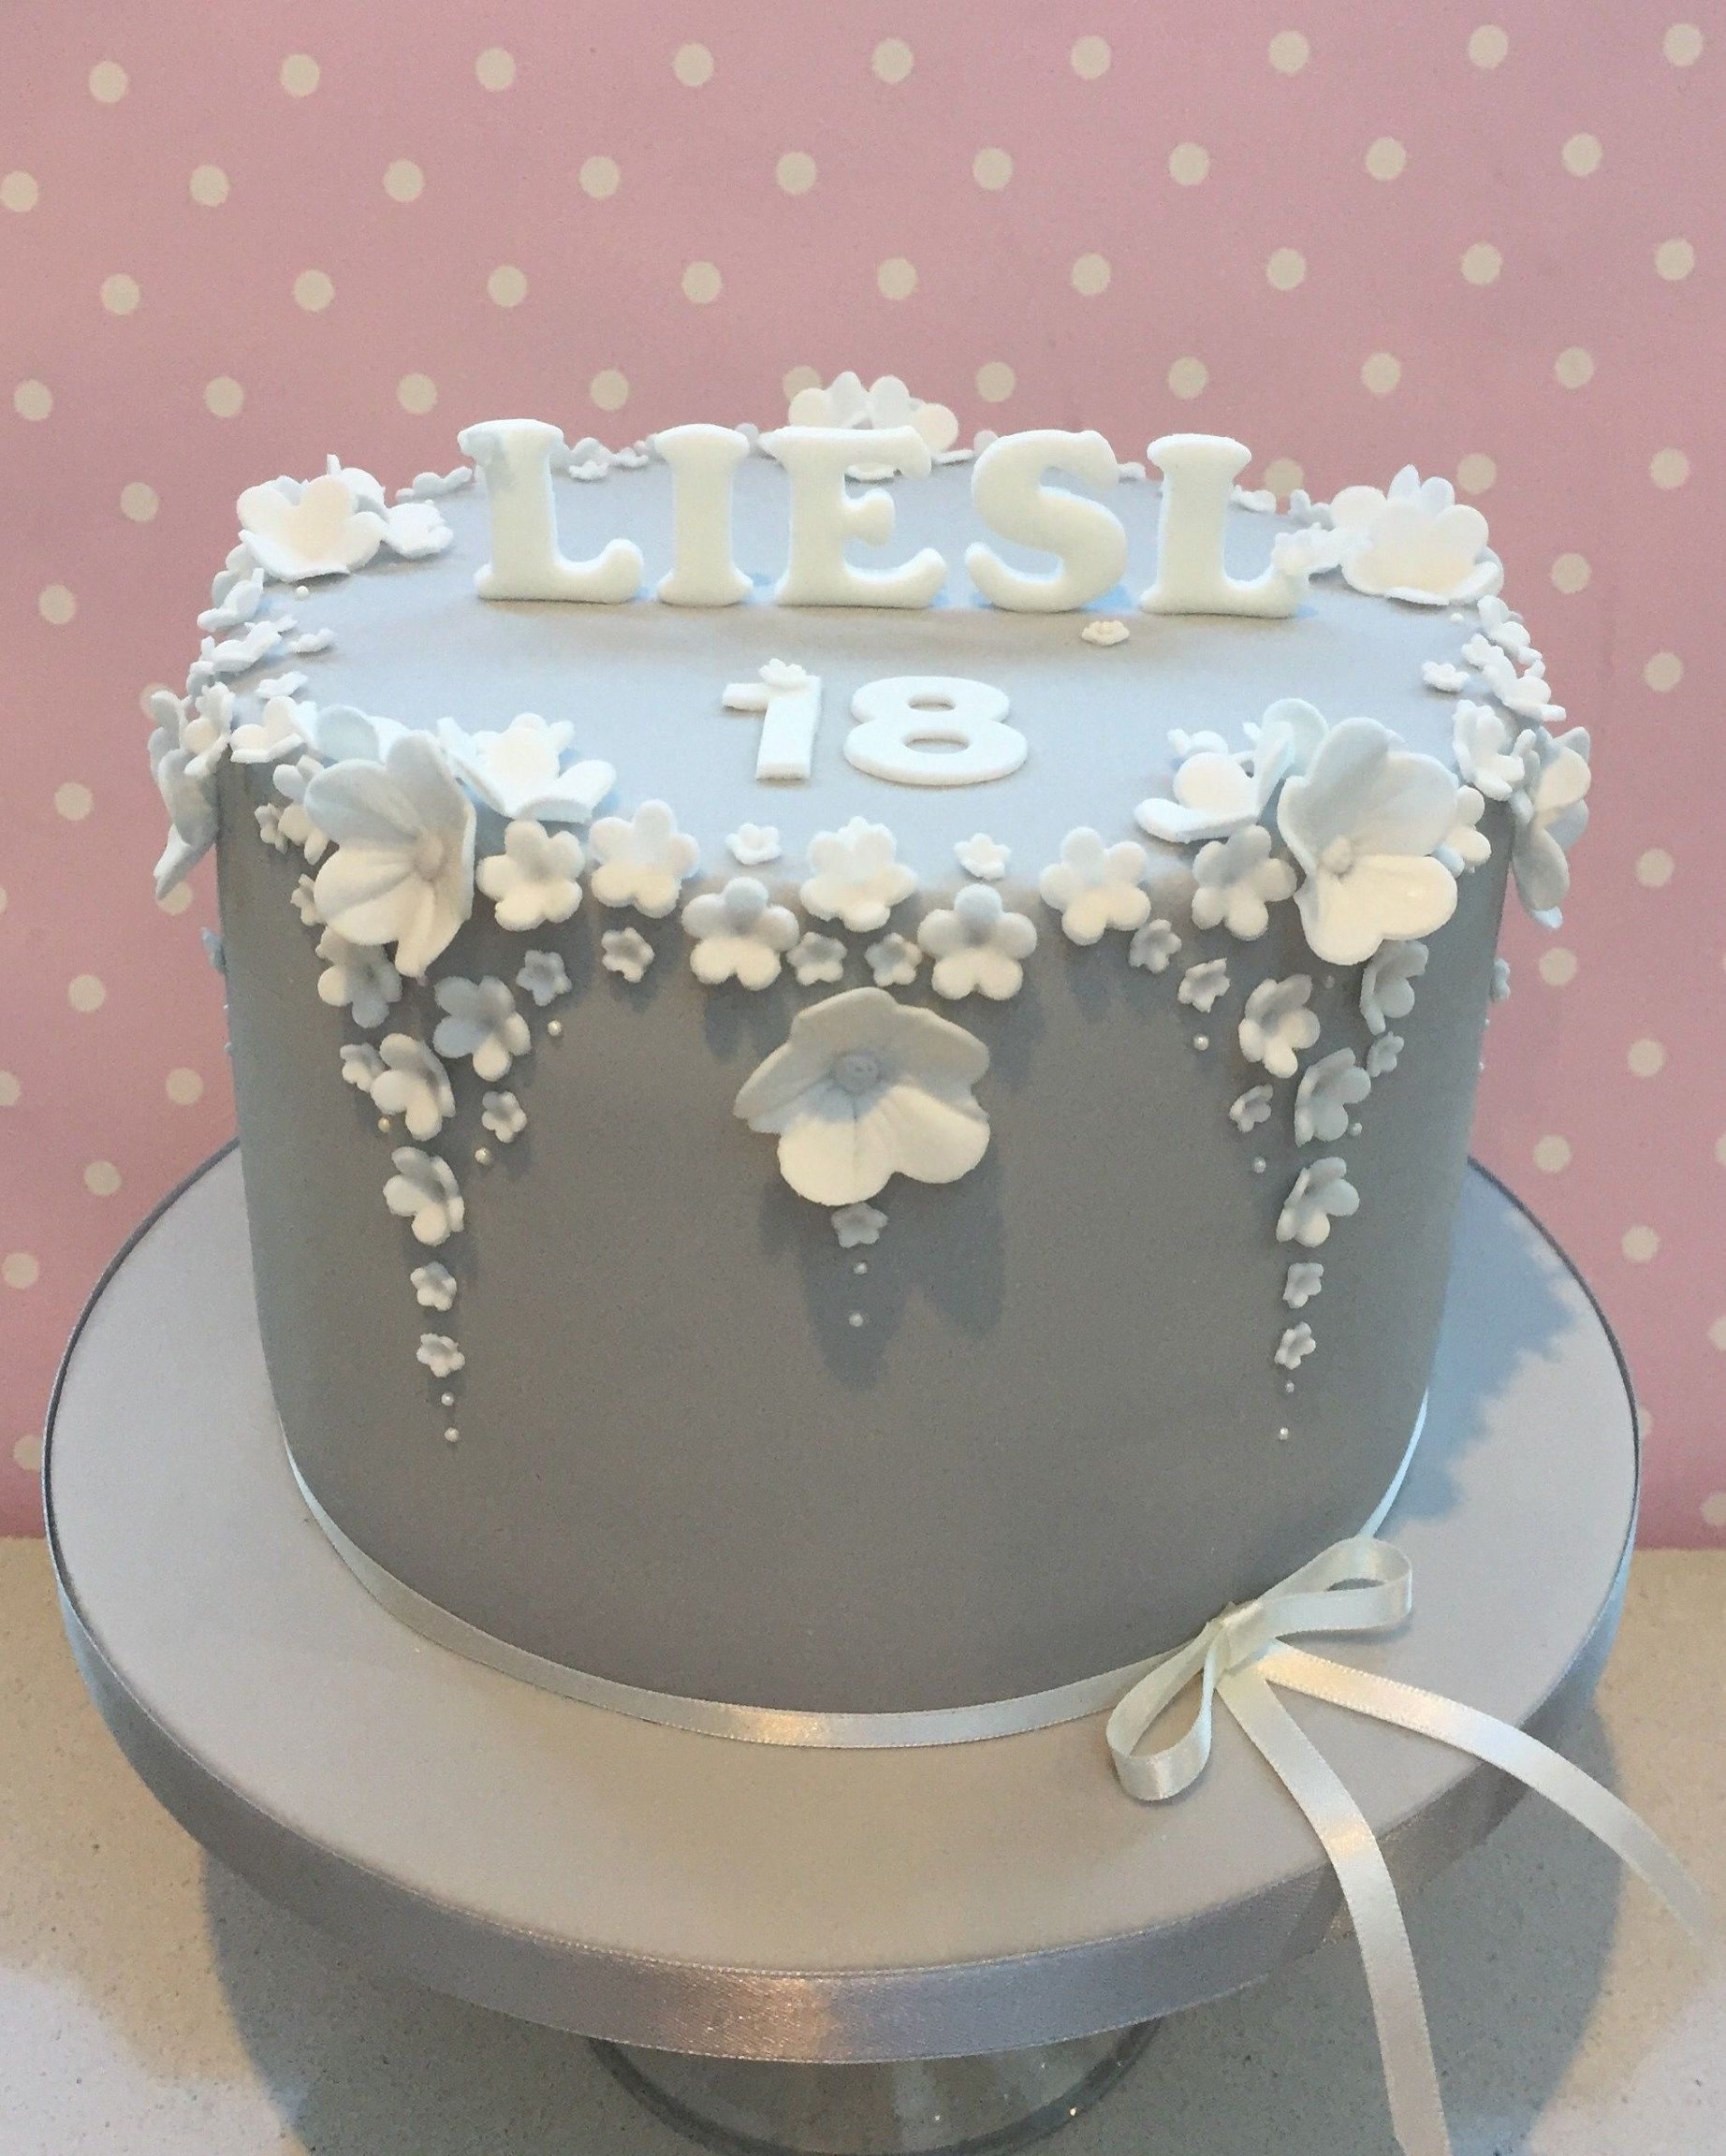 27 Inspired Picture Of 18th Birthday Cake With Images 18th